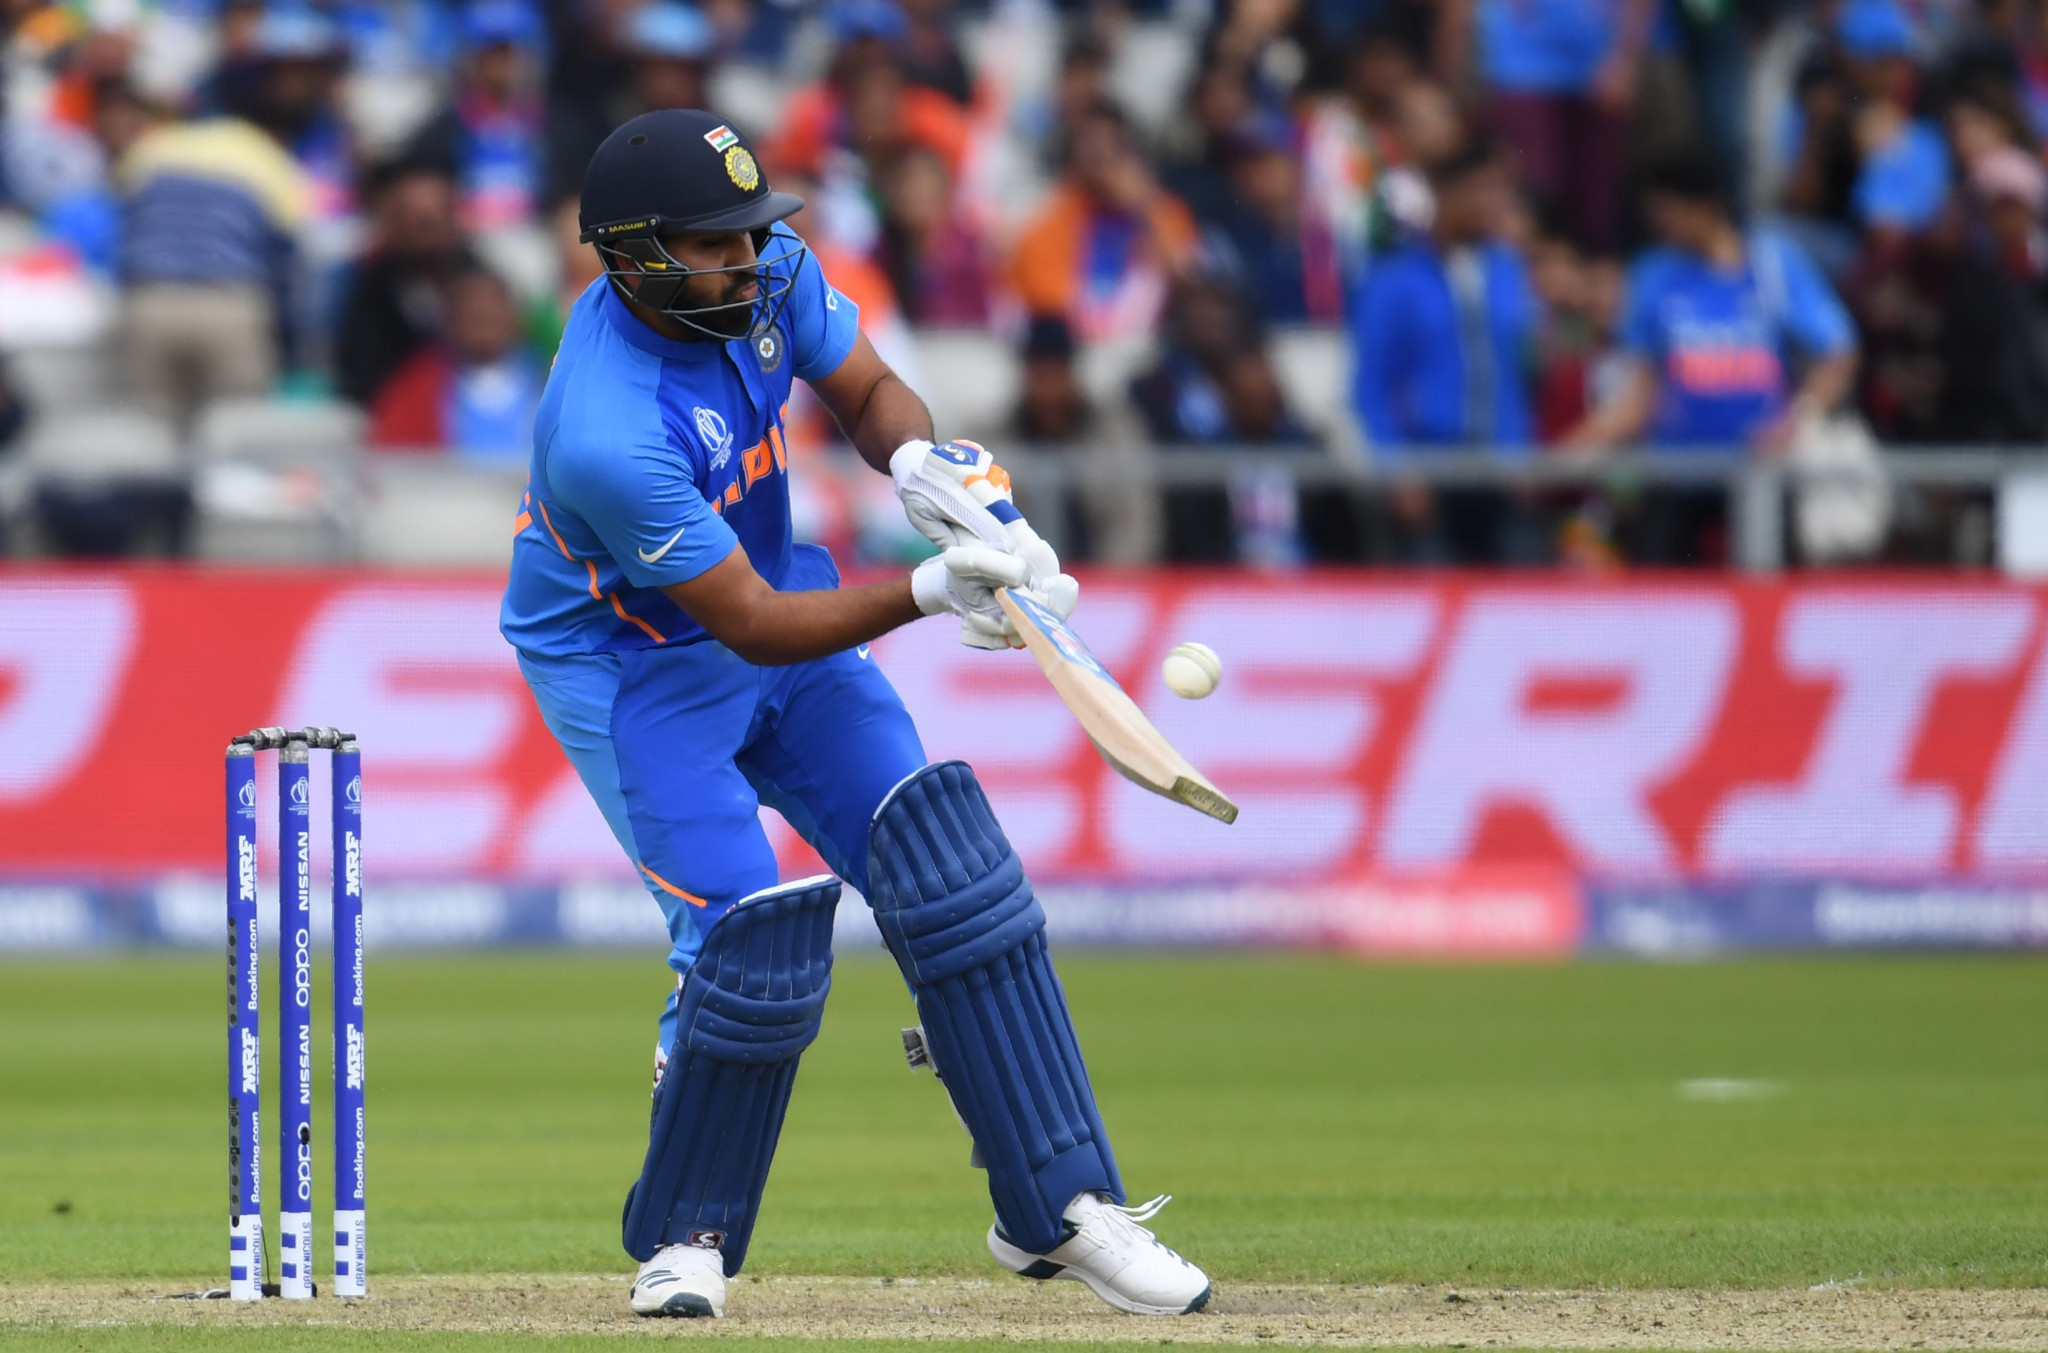 Rohit Sharma hit 140 as India beat Pakistan at the Cricket World Cup ©Getty Images